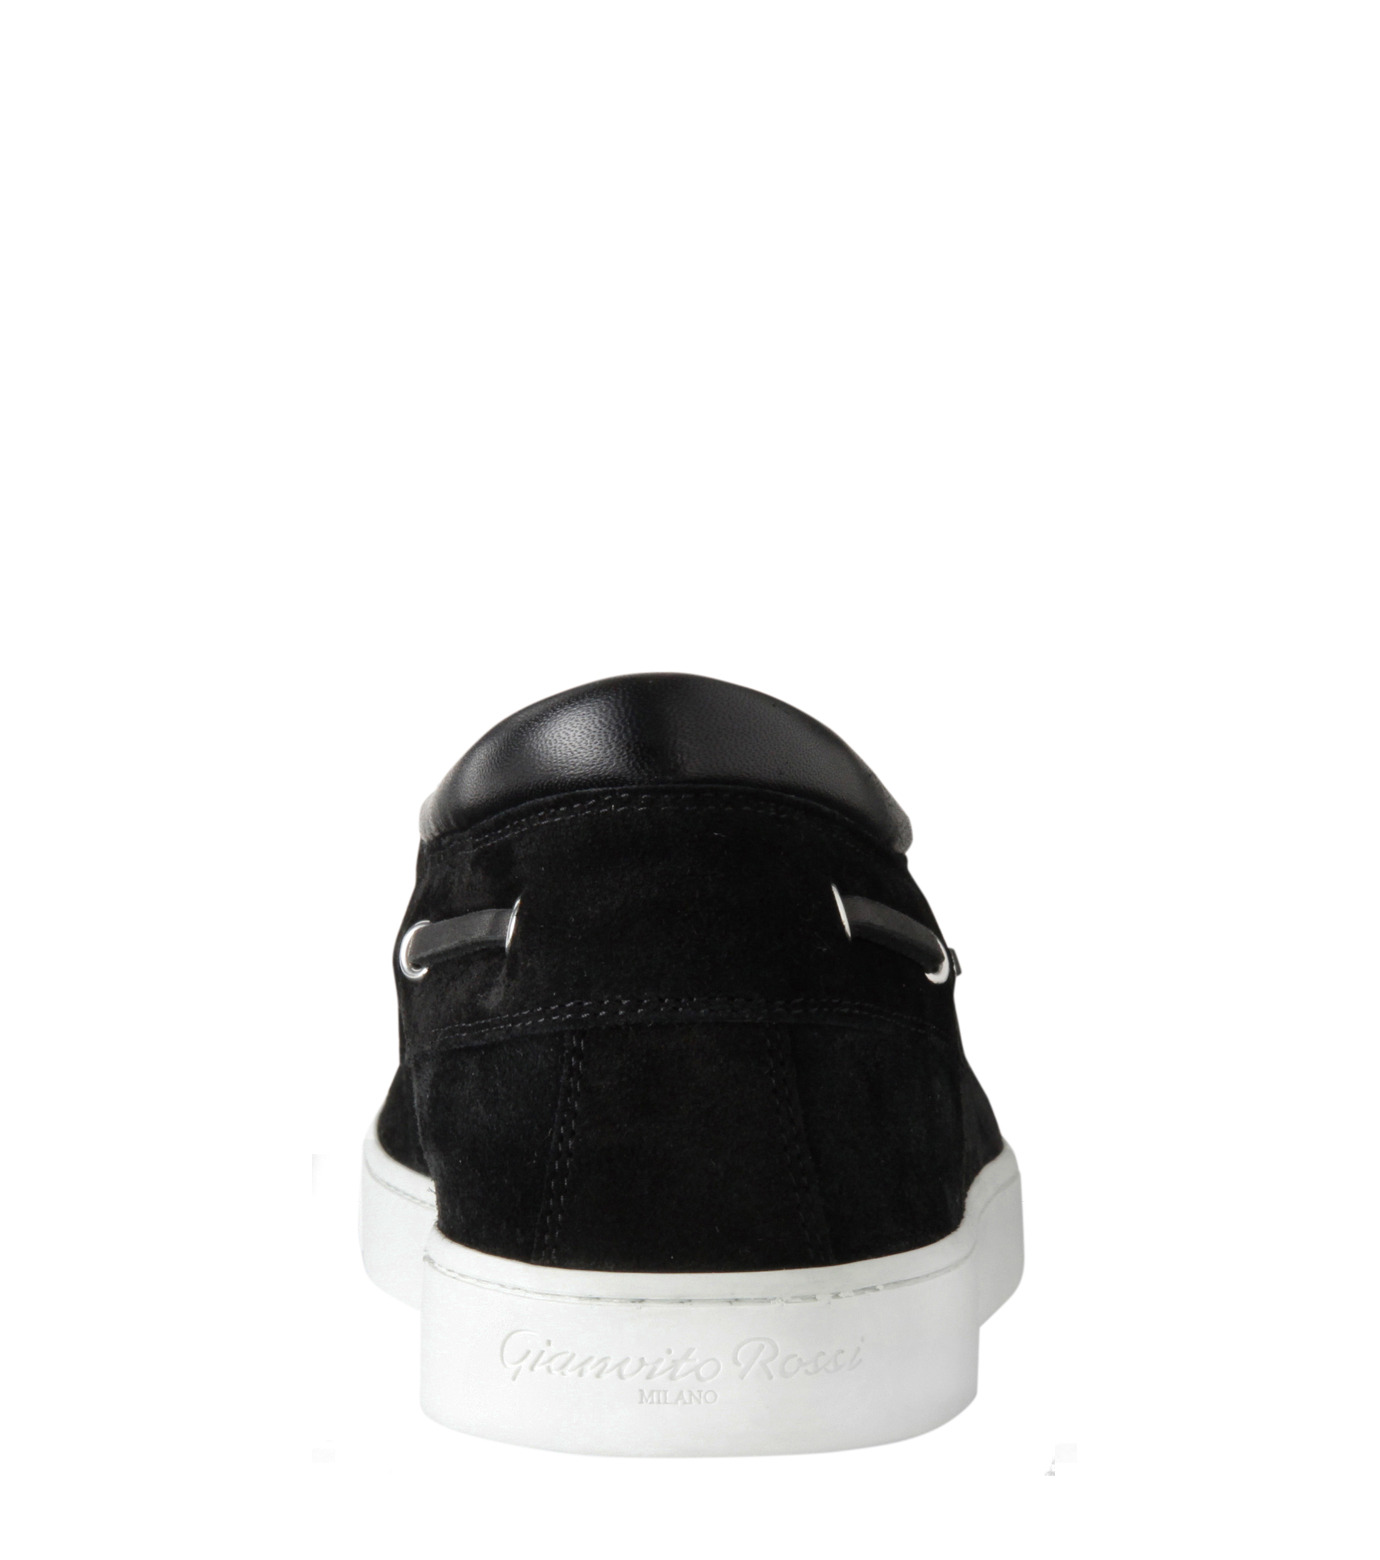 Gianvito Rossi(ジャンヴィト ロッシ)のMiddle Cut Deck Shoes-BLACK(シューズ/shoes)-S20966-13 拡大詳細画像3